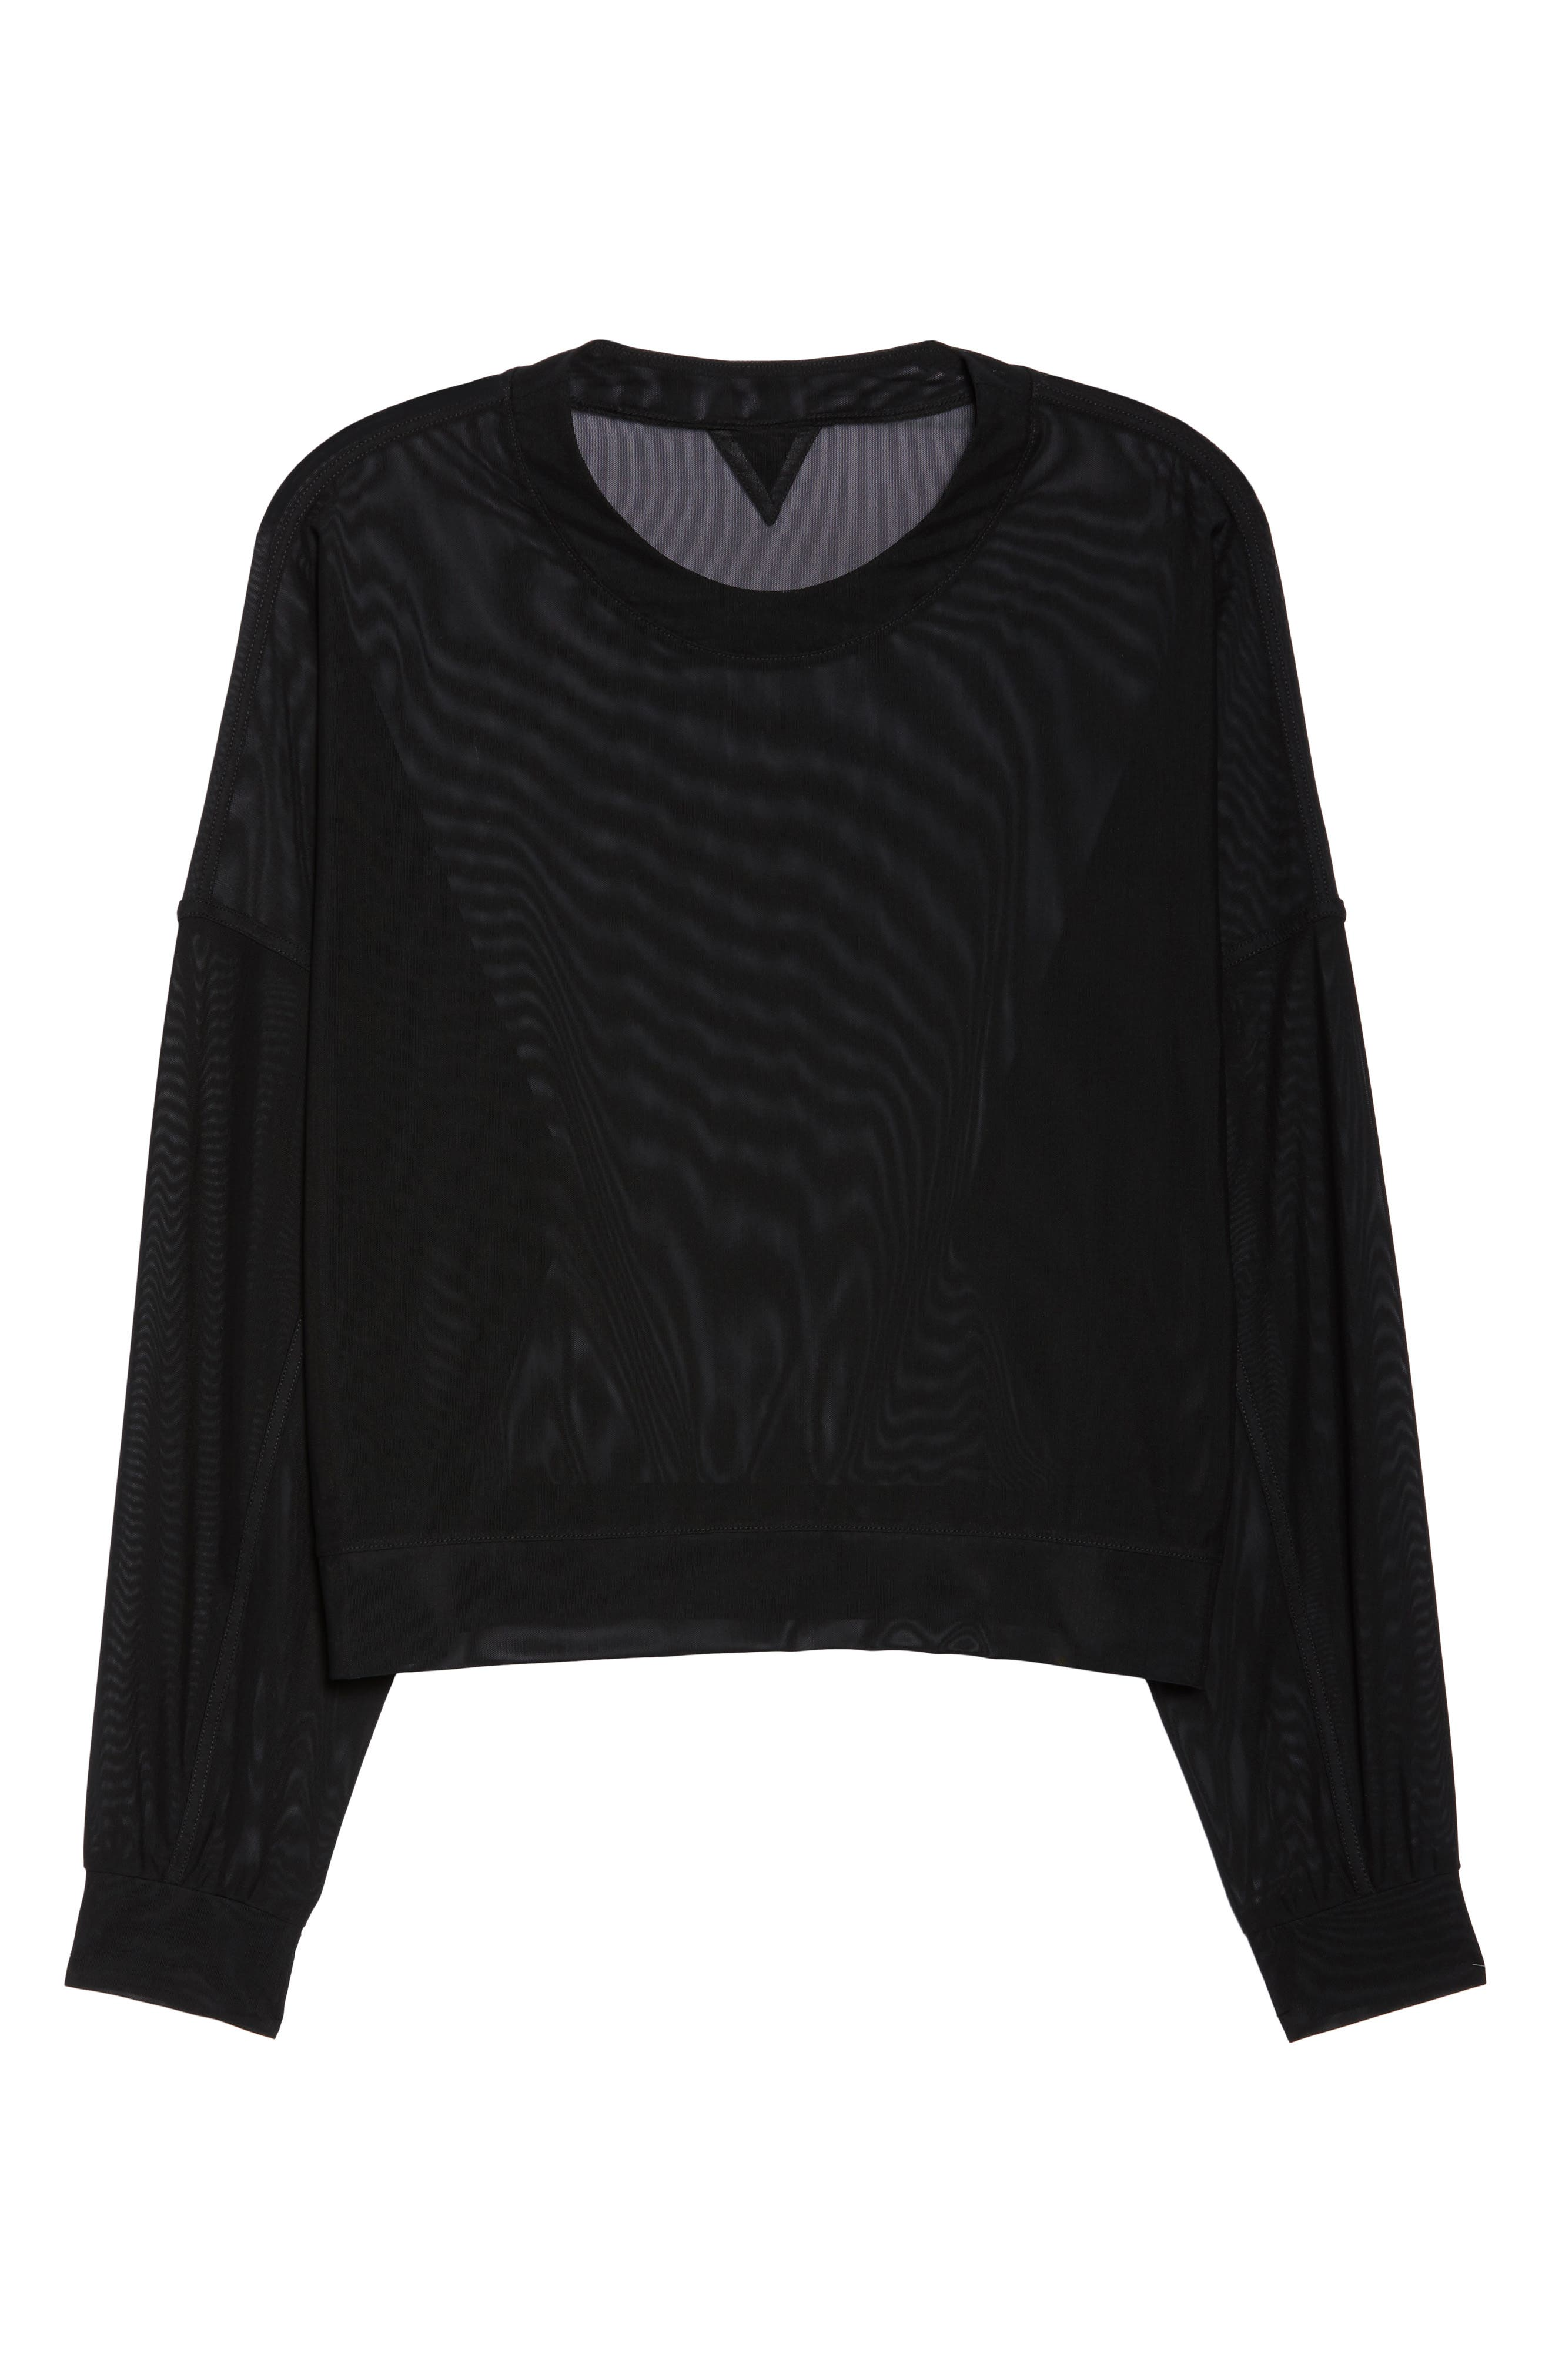 Ambiance Sheer Pullover,                             Alternate thumbnail 7, color,                             010